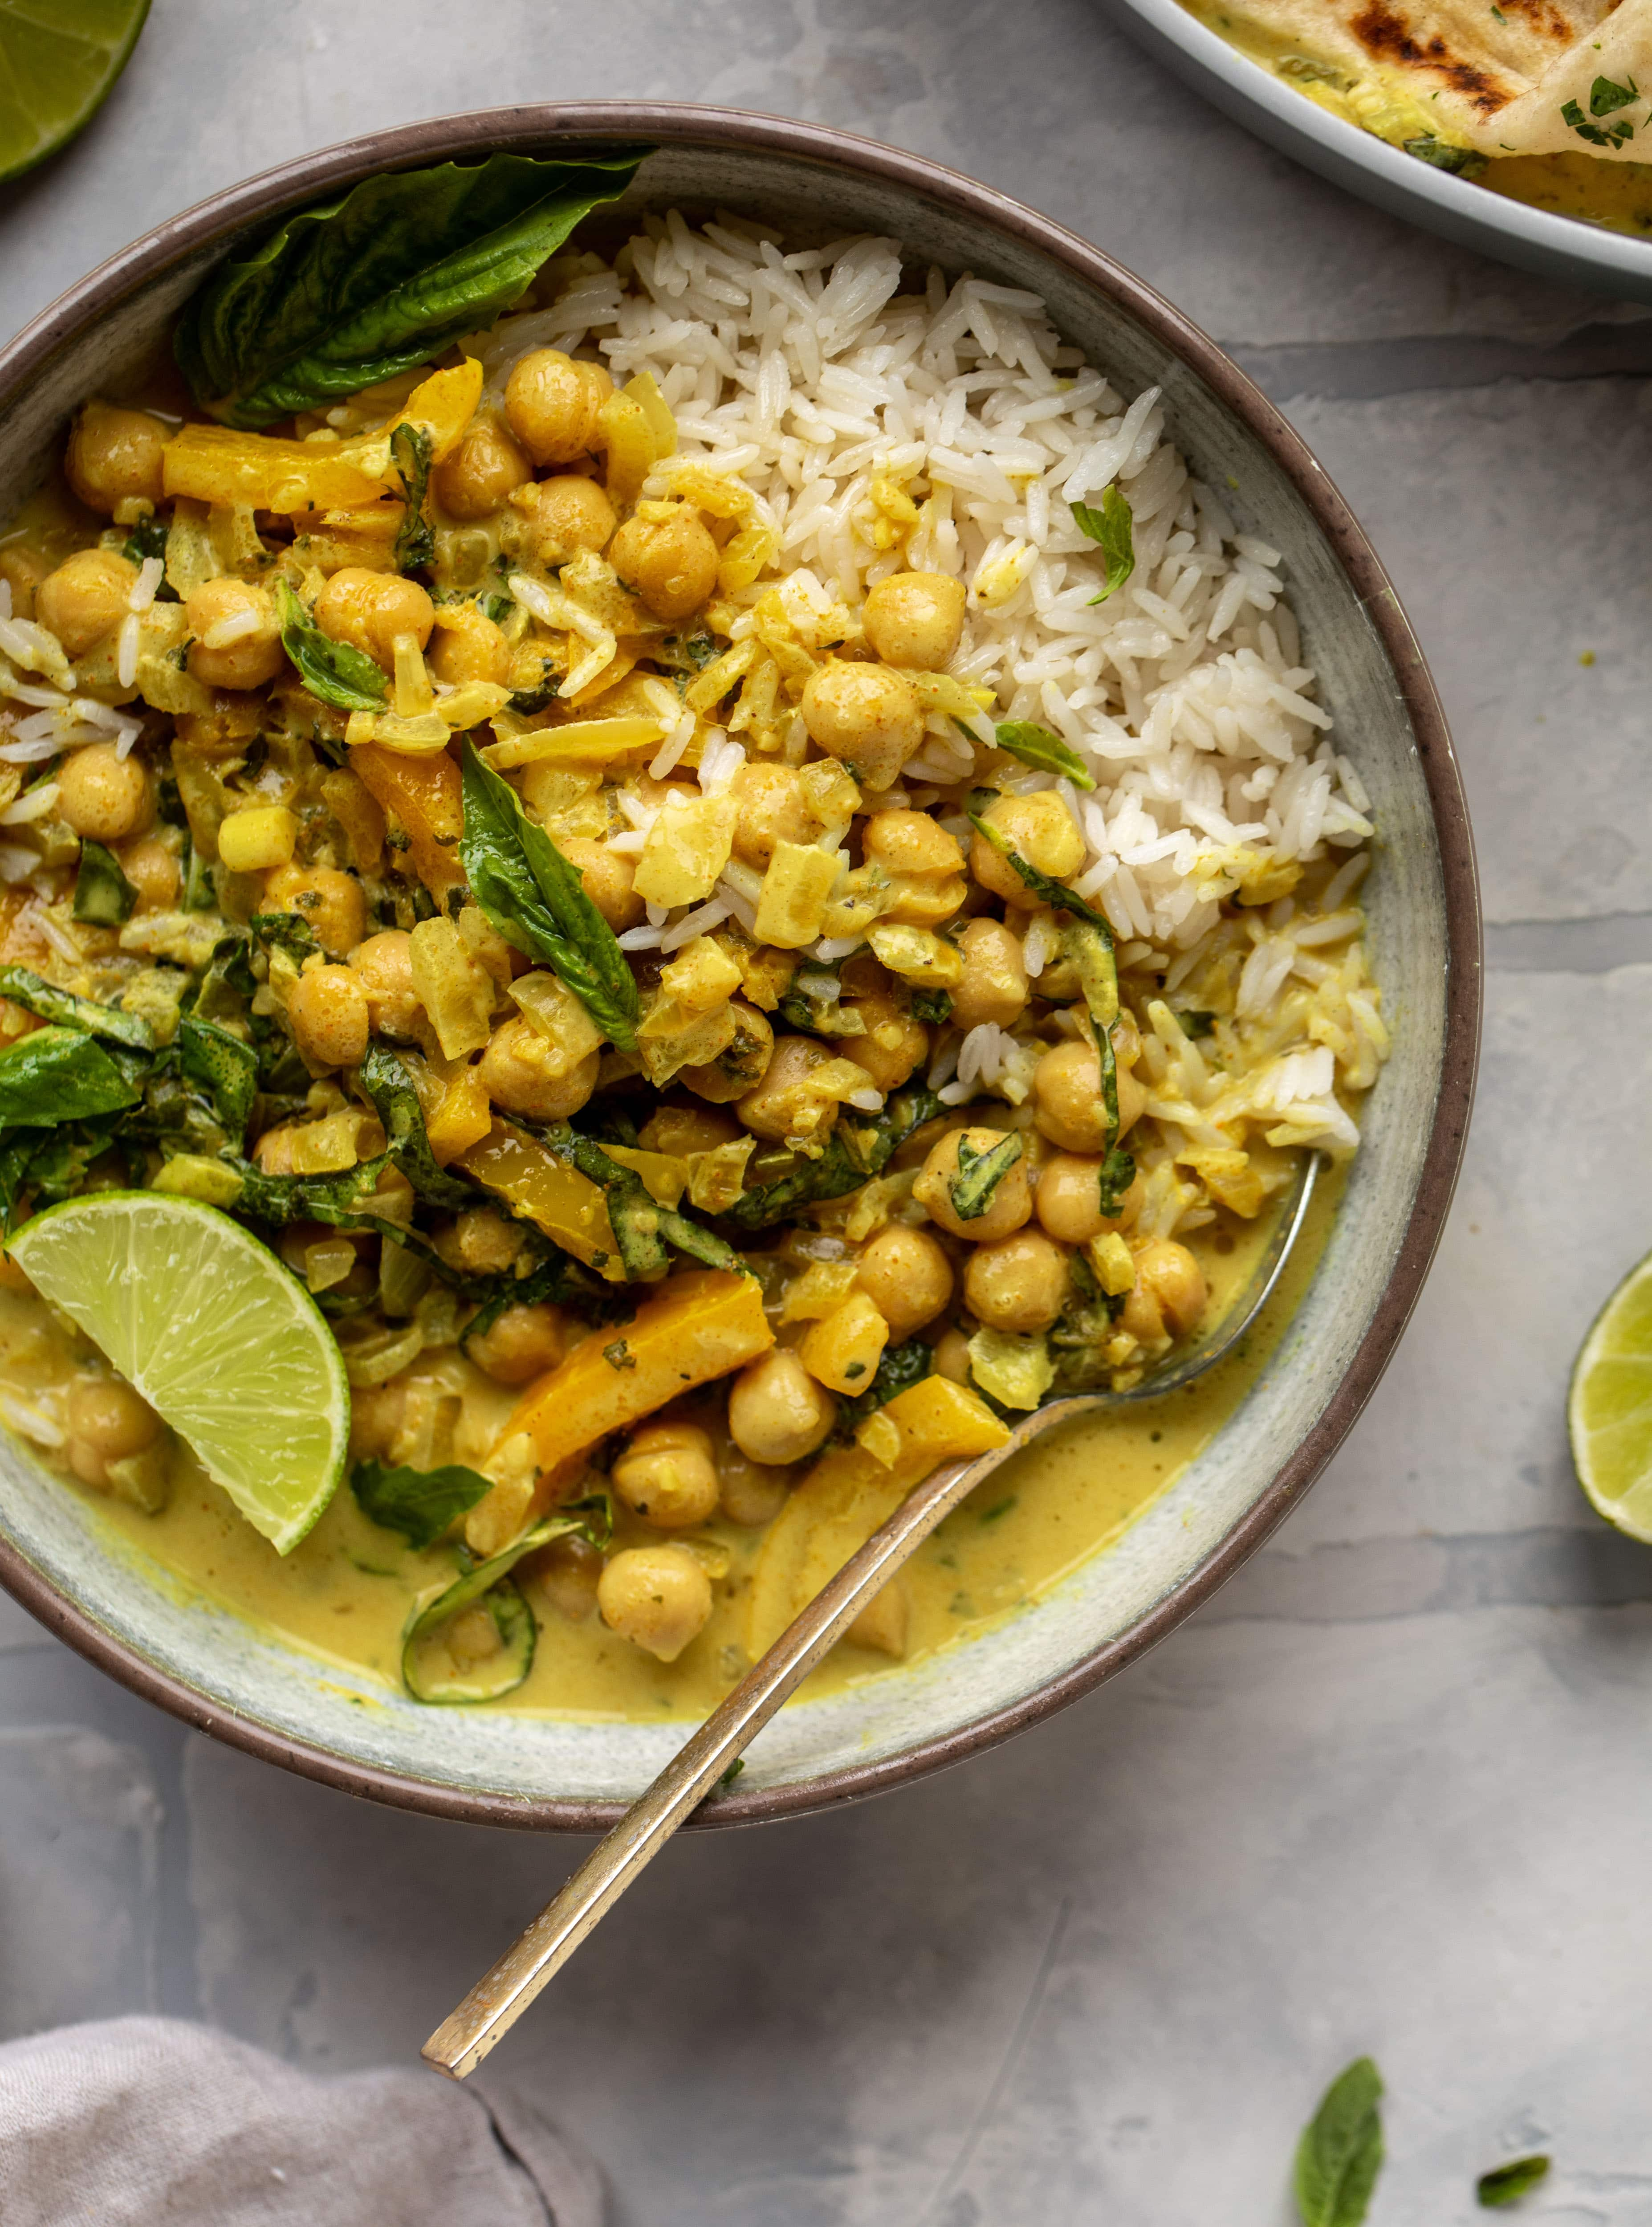 This basil chickpea coconut curry comes together in 20 minutes! Serve with jasmine rice or your favorite naan, or both! So easy and flavorful.